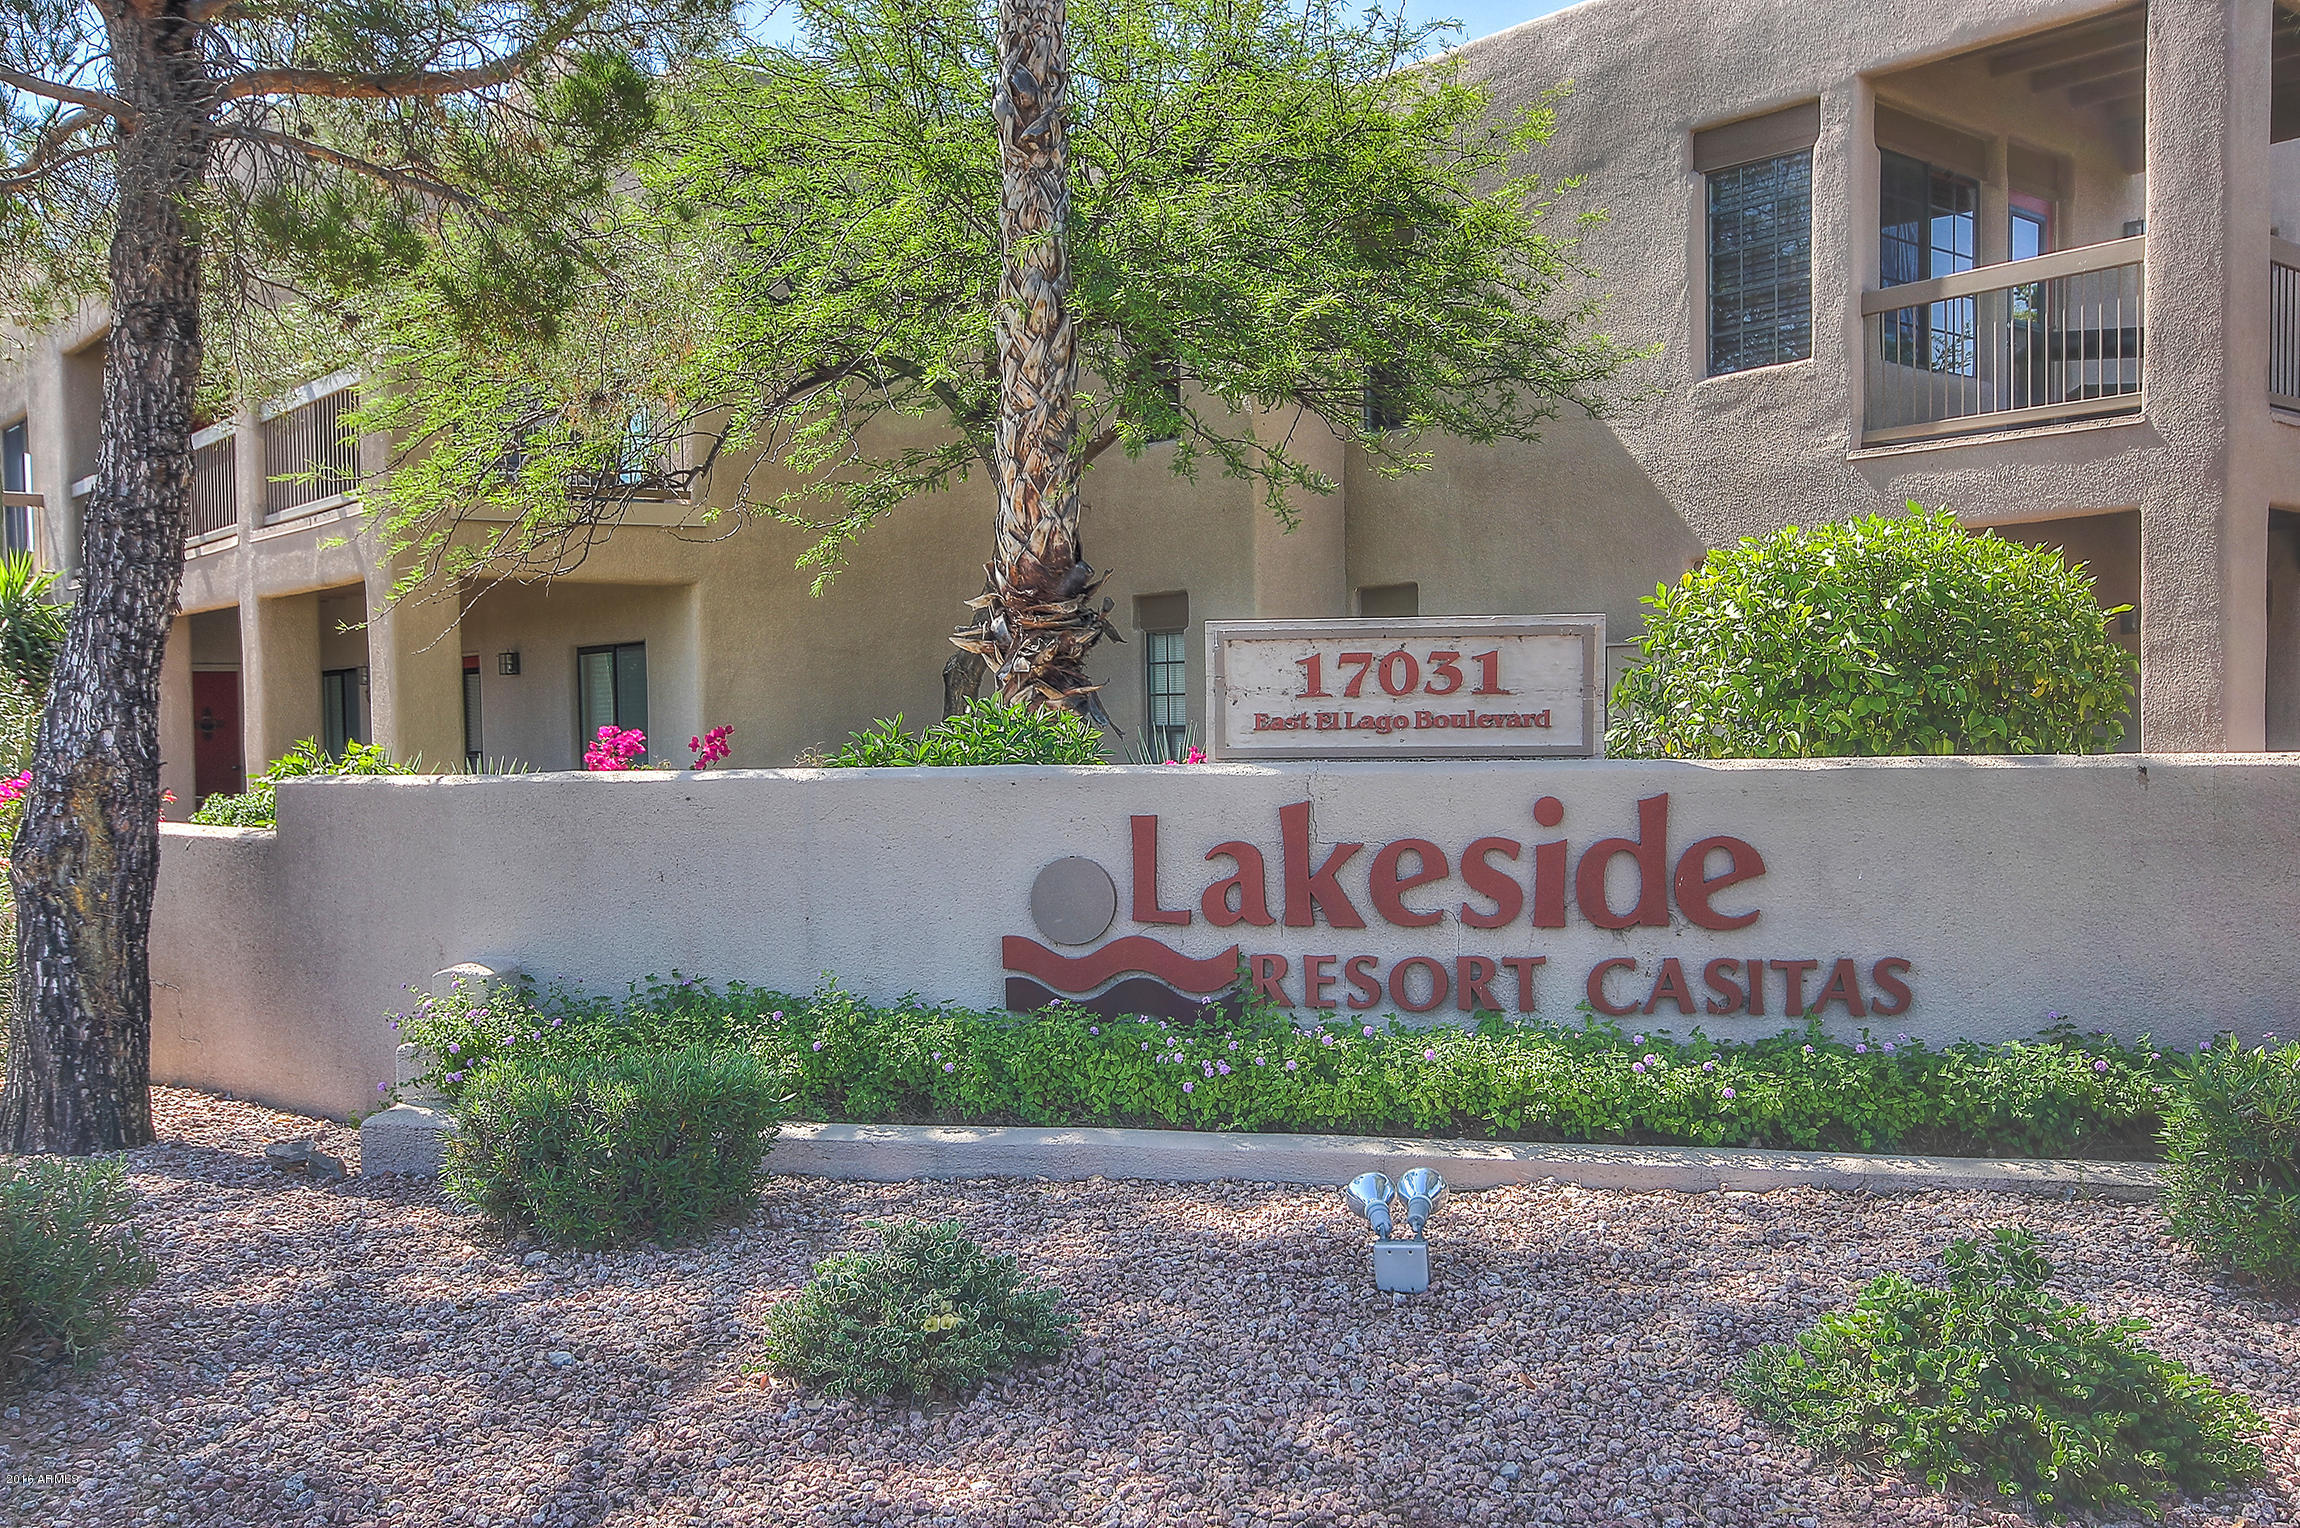 17031 E El Lago Boulevard, Unit 2106, Fountain Hills AZ 85268 - Photo 2